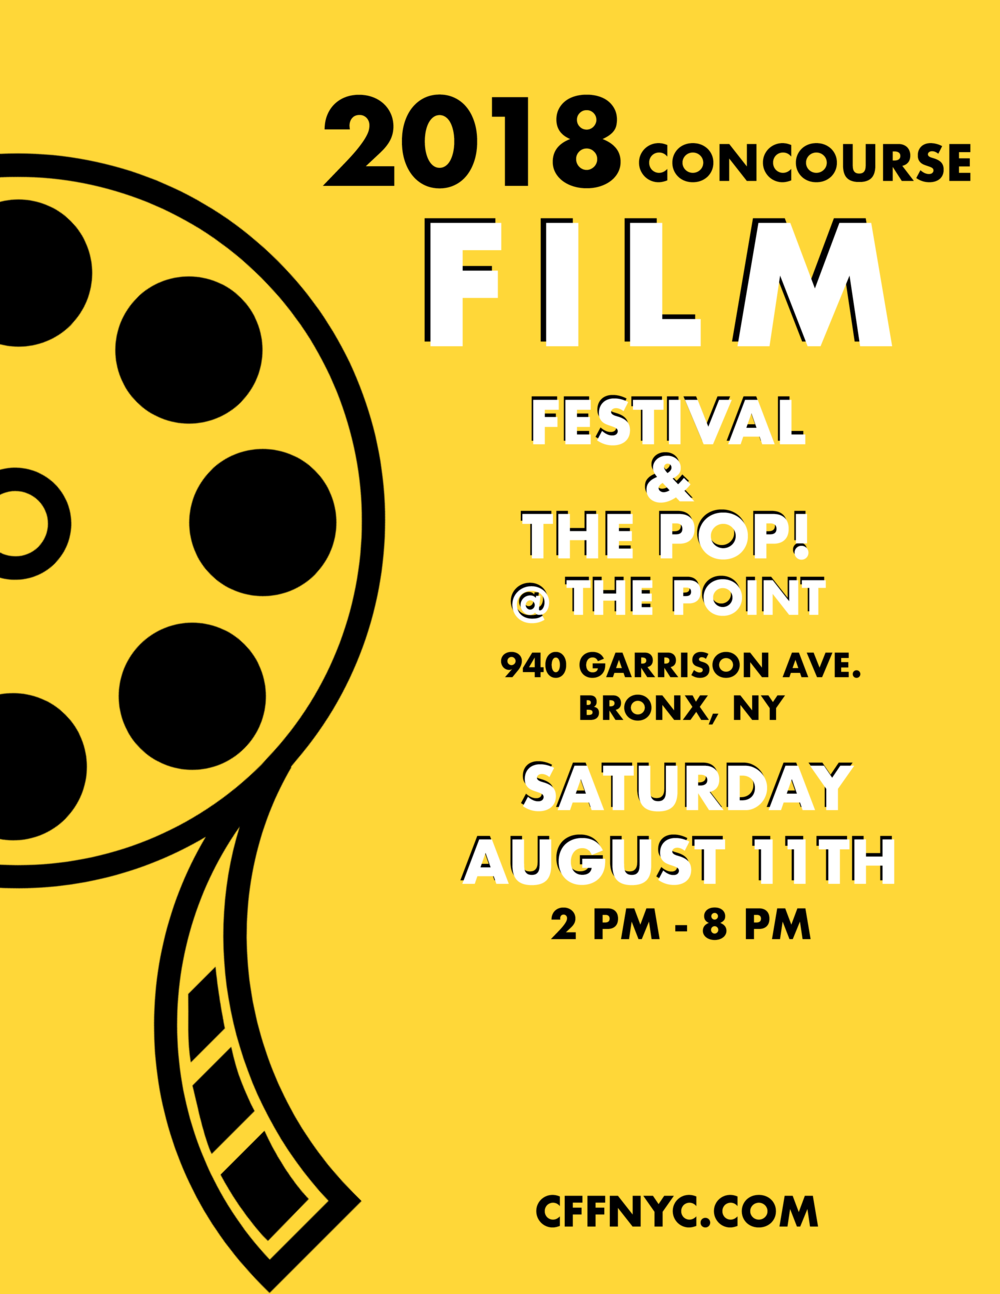 Summer Film Festival - The 1st Annual 2018 Concourse Film Festival will be highlighting a profound collection of films, music videos and online content from Bronx Filmmakers, and filmmakers from all across this nation. We strive to become a defining platform for our Bronx filmmakers and all artists alike. Join us, Saturday, August 11th and become part of our city's history!